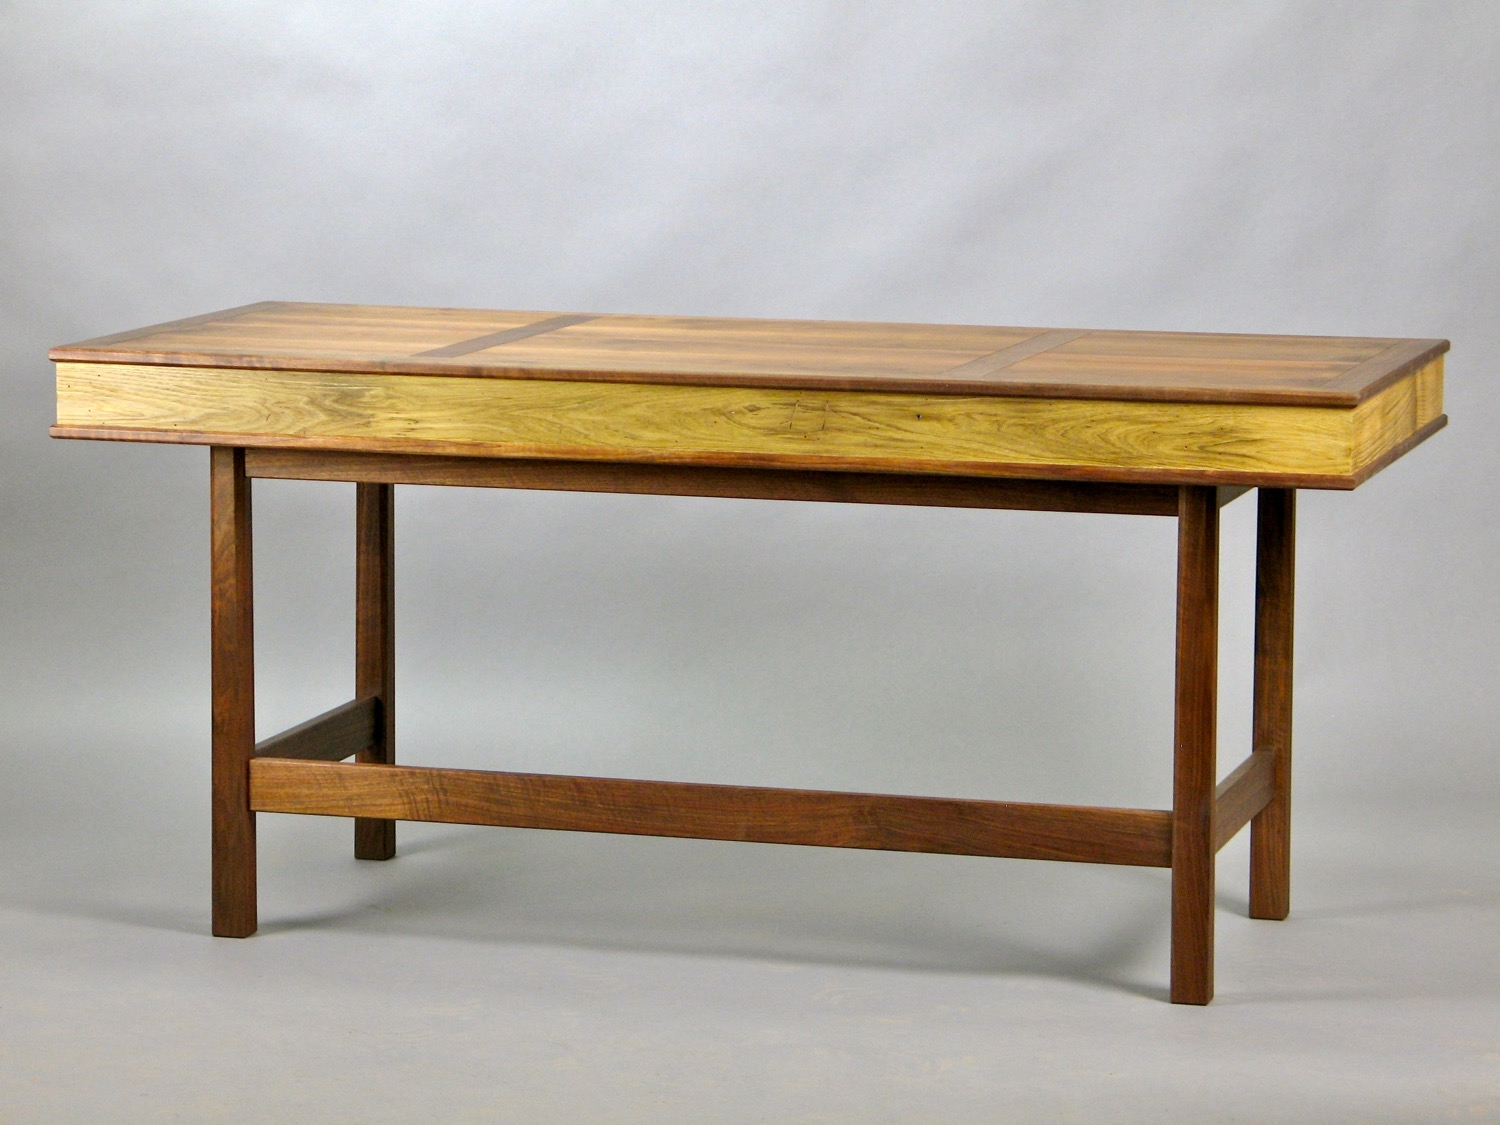 Laird desk - walnut cut from the clients property, reclaimed chestnut from the clients barn